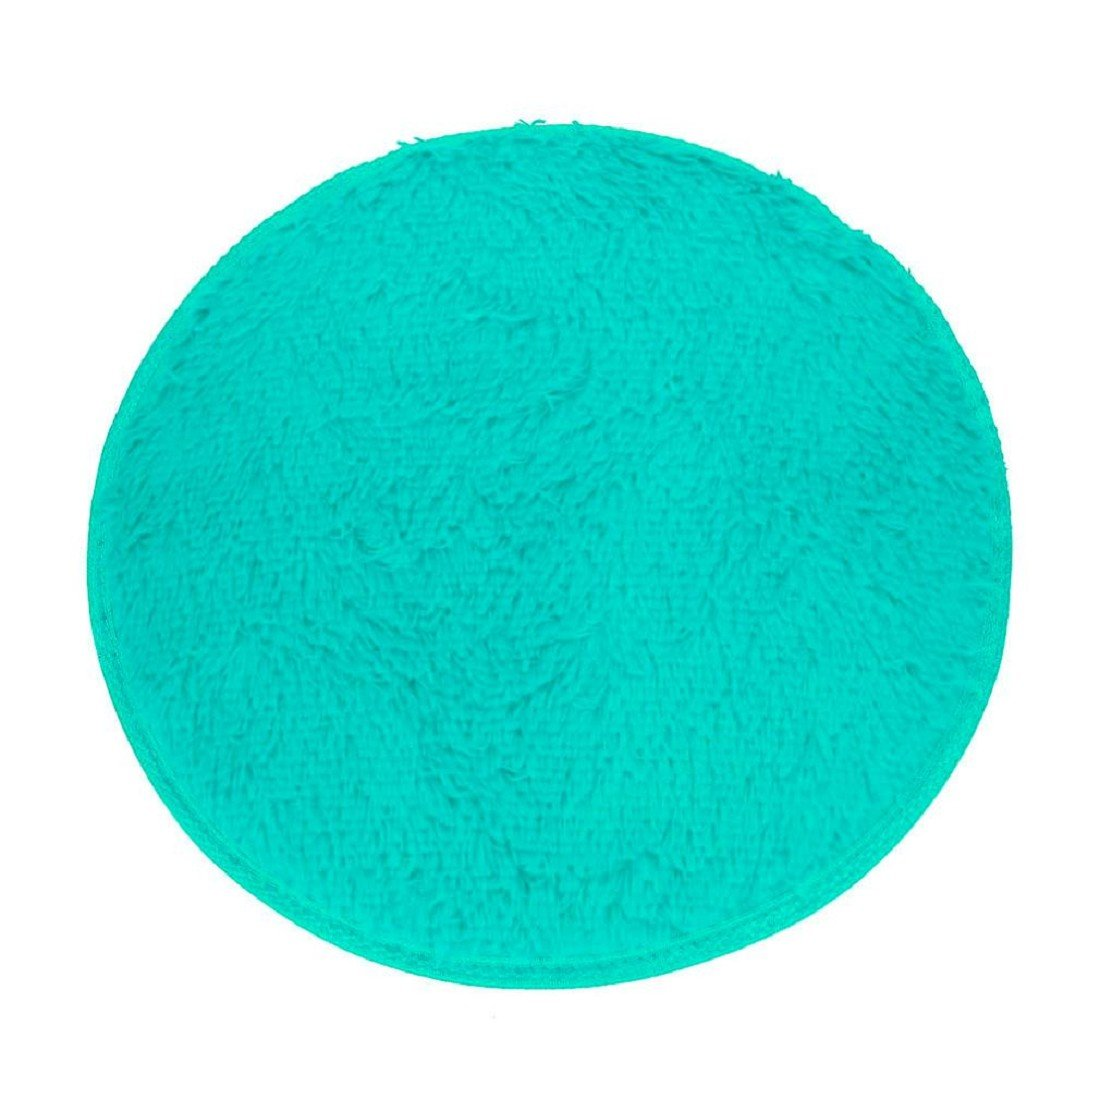 FAPIZI Soft Bath Bedroom Floor Shower Round Mat Rug Non-slip (Blue)